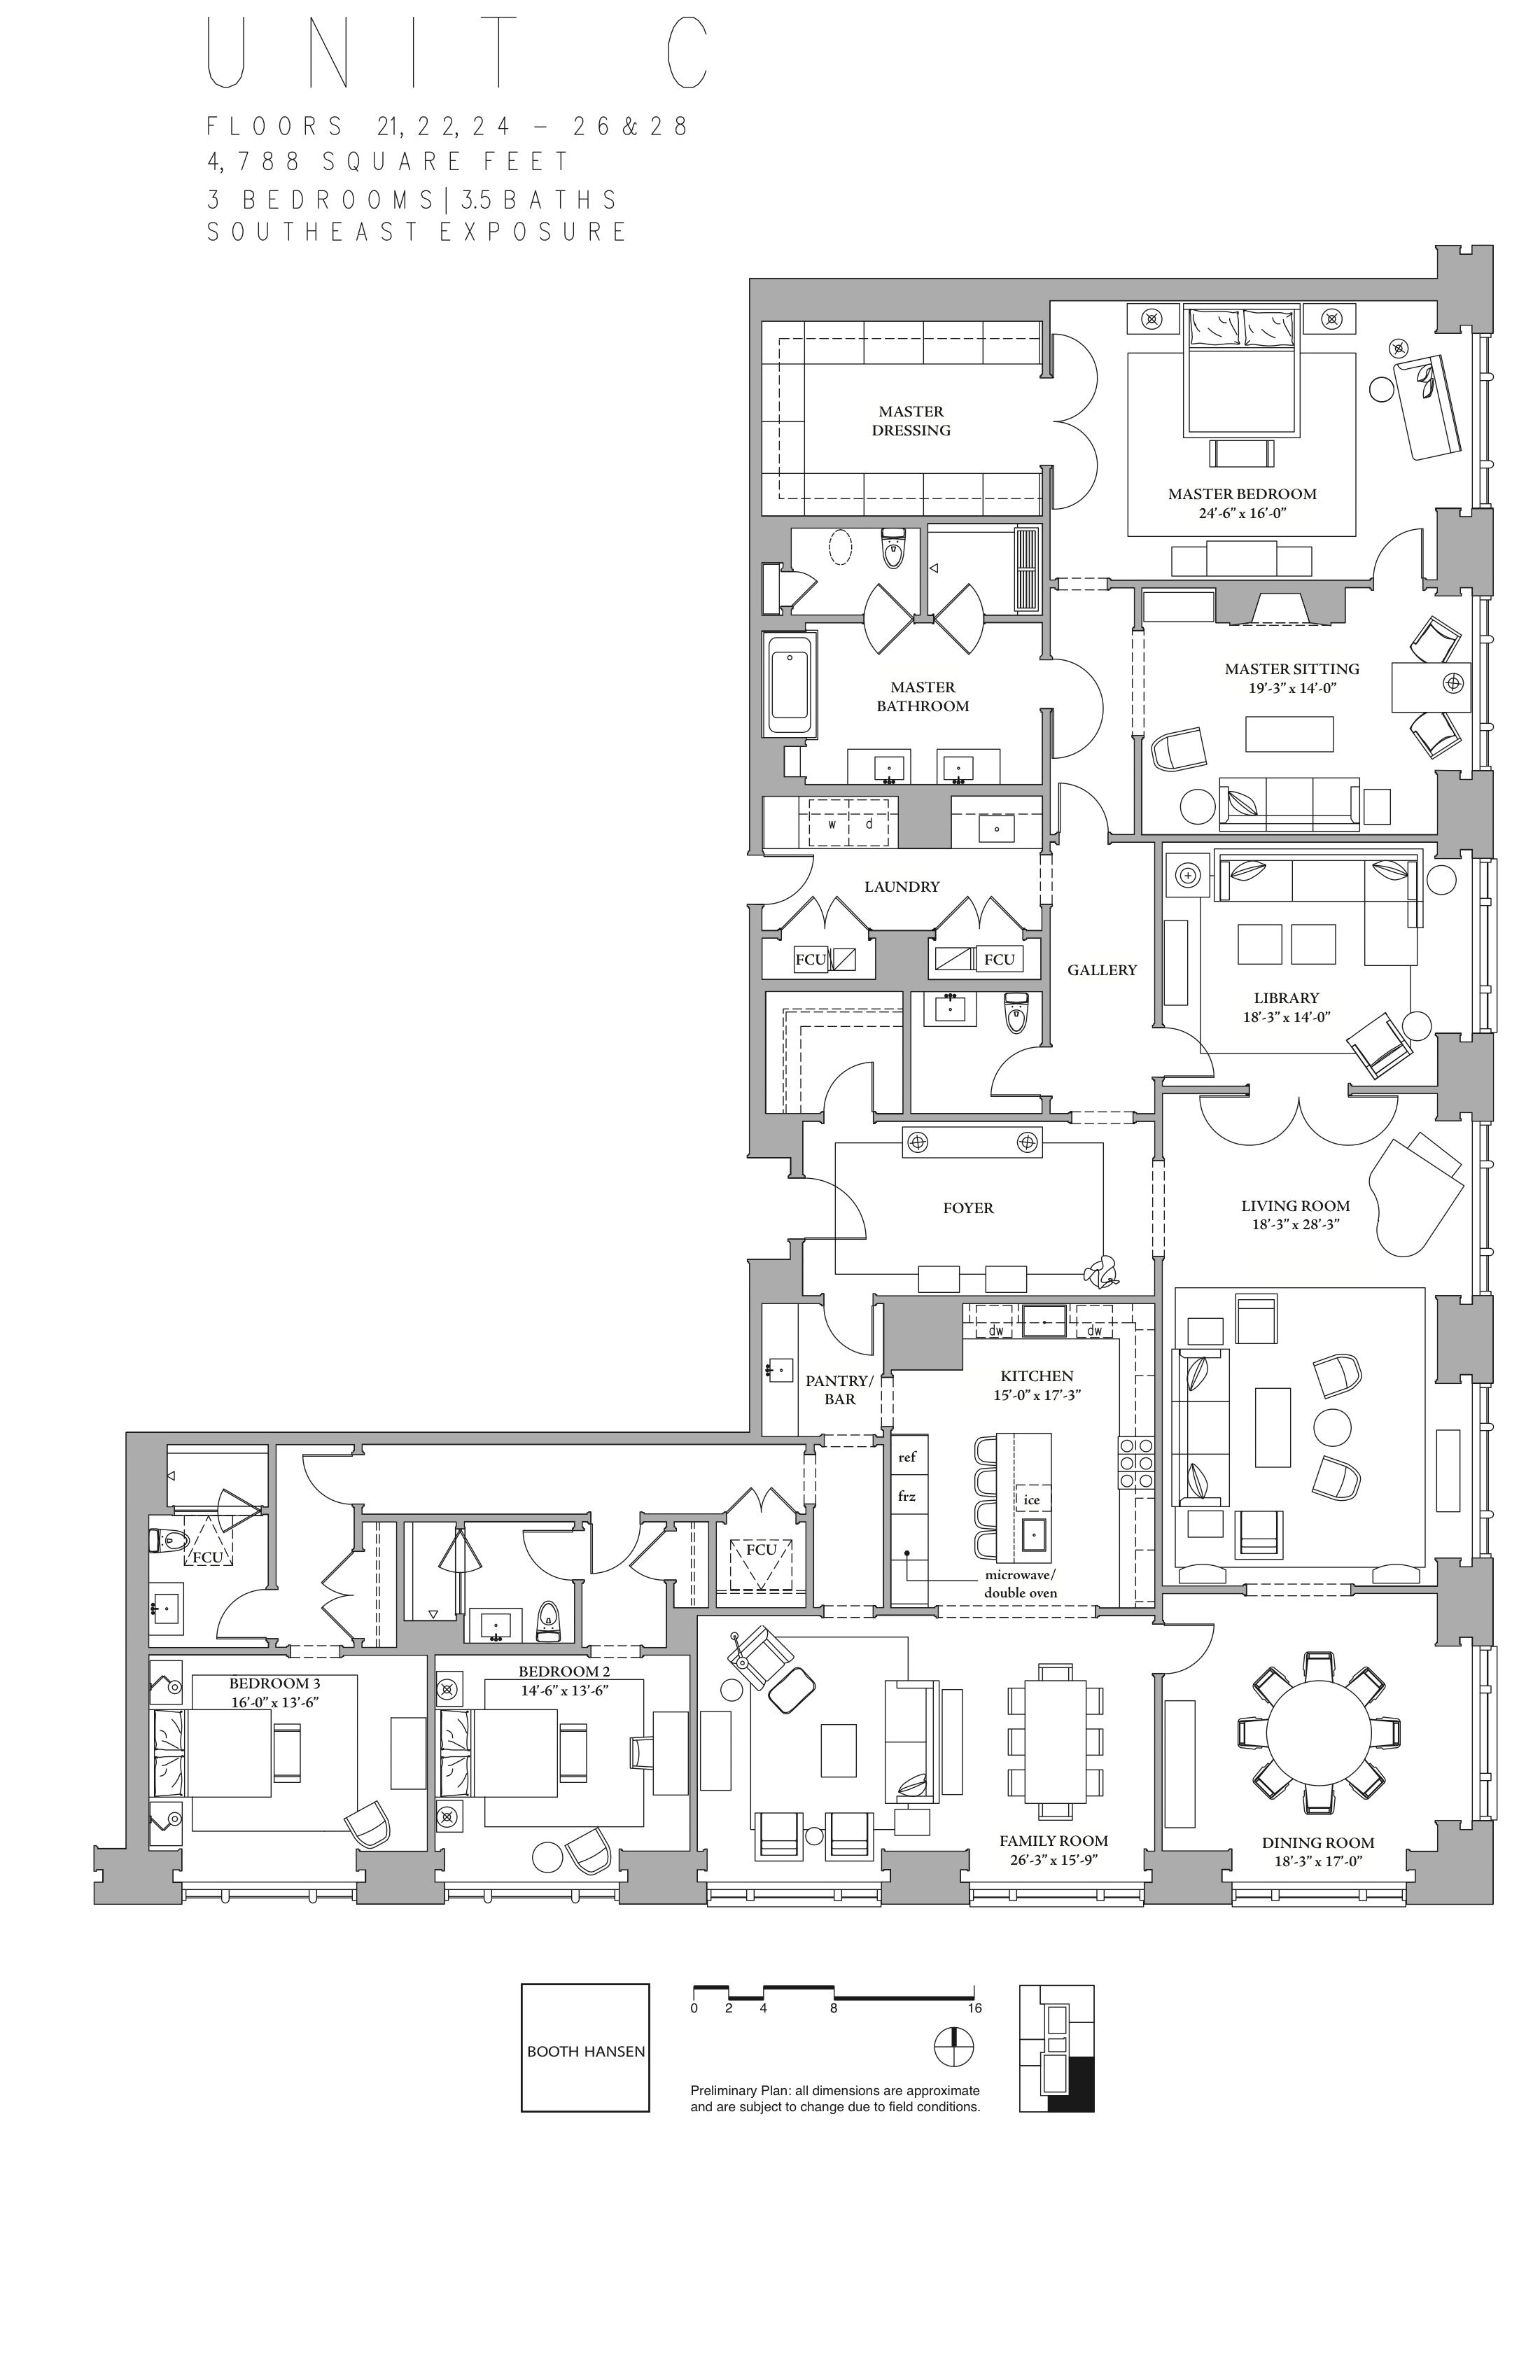 900 North Michigan Floor Plans Chicago, USA. Luxury